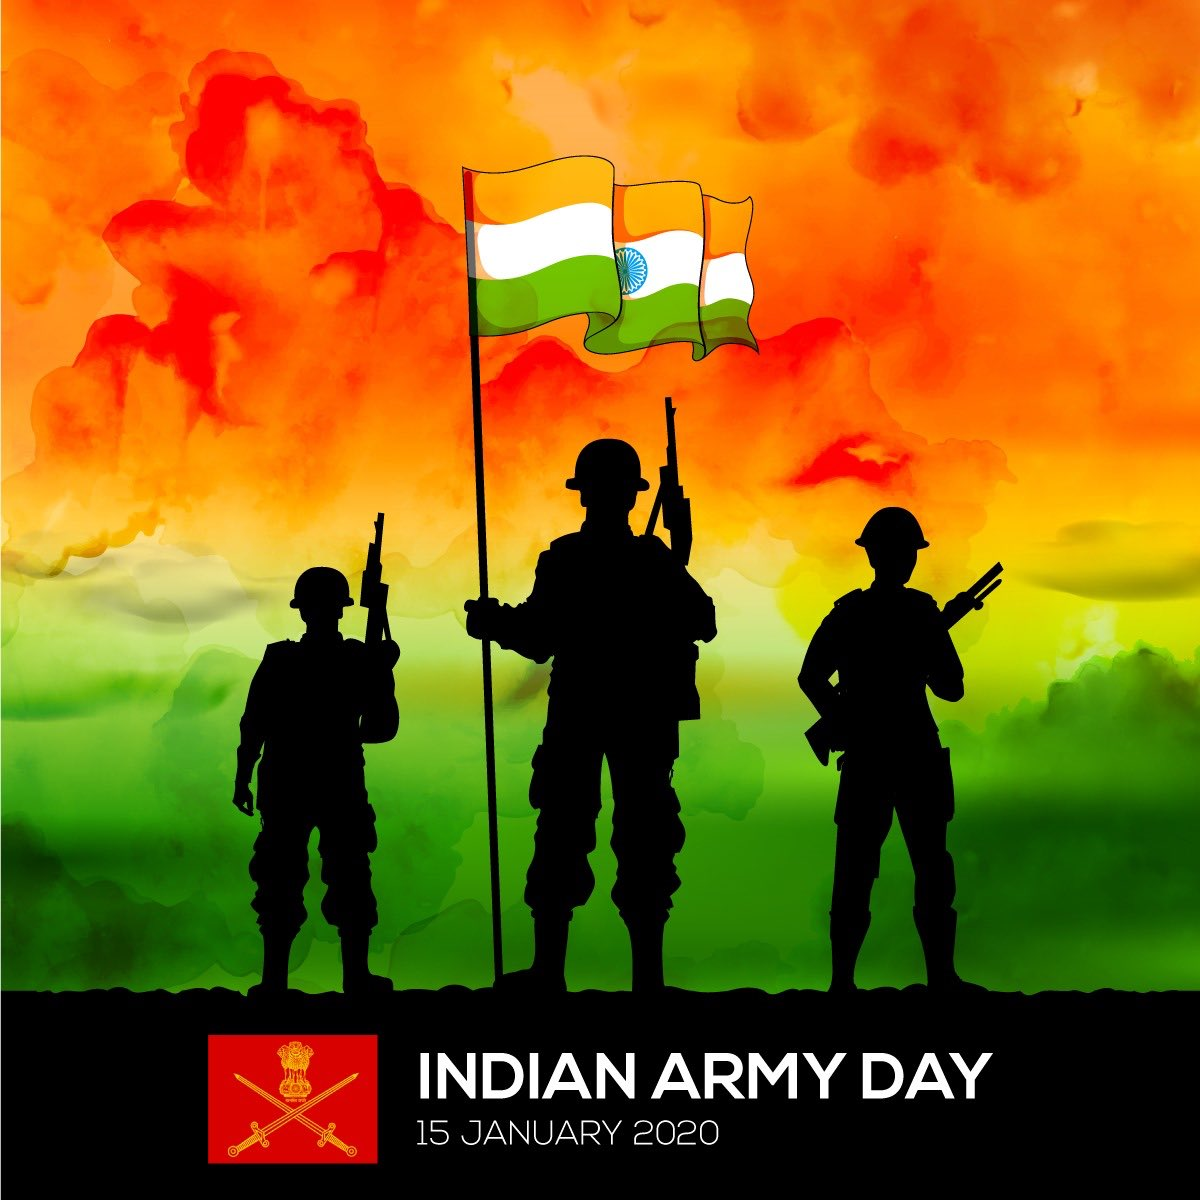 Greetings to all Indian Army personnel, ex-servicemen and their families on #ArmyDay . Gratitude and salute to their indomitable courage and selfless service to the nation.